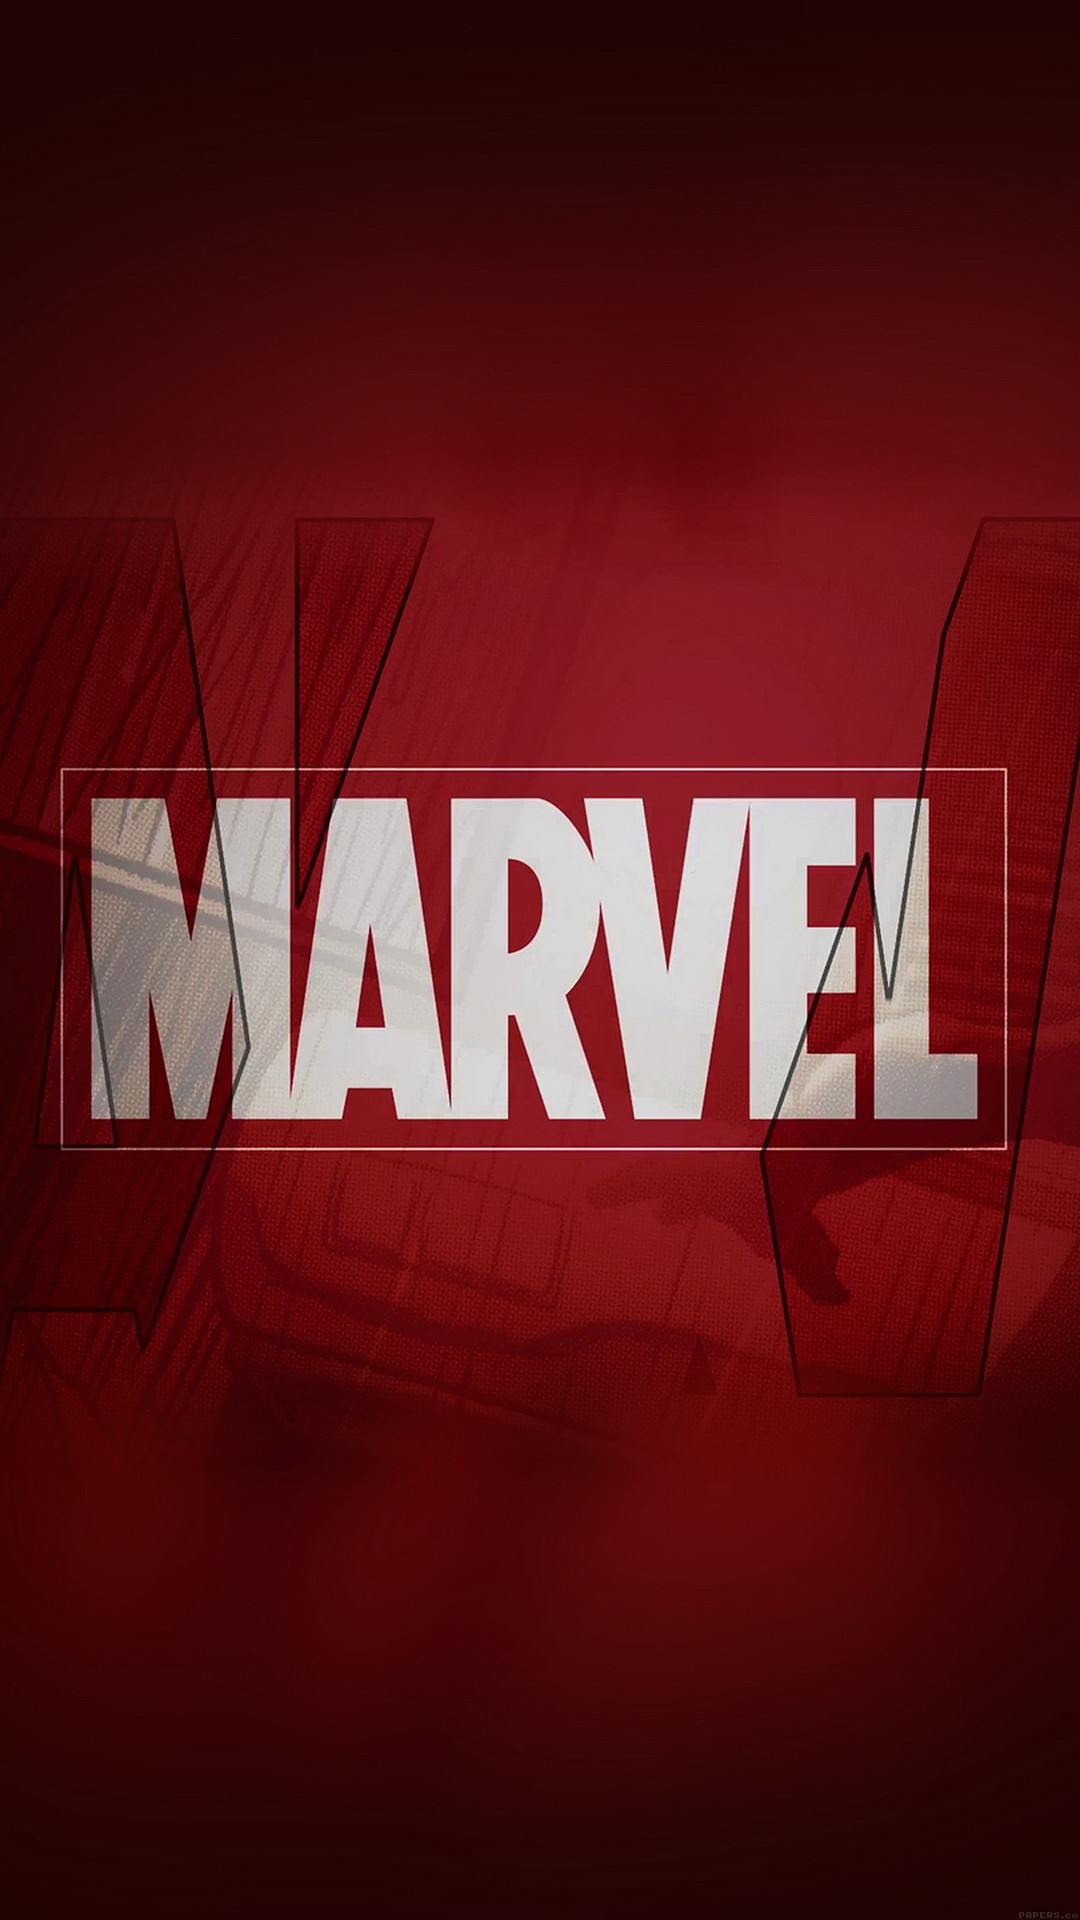 Marvel Comics 1280×960 download | Wallpapers | Pinterest | Comic and Marvel